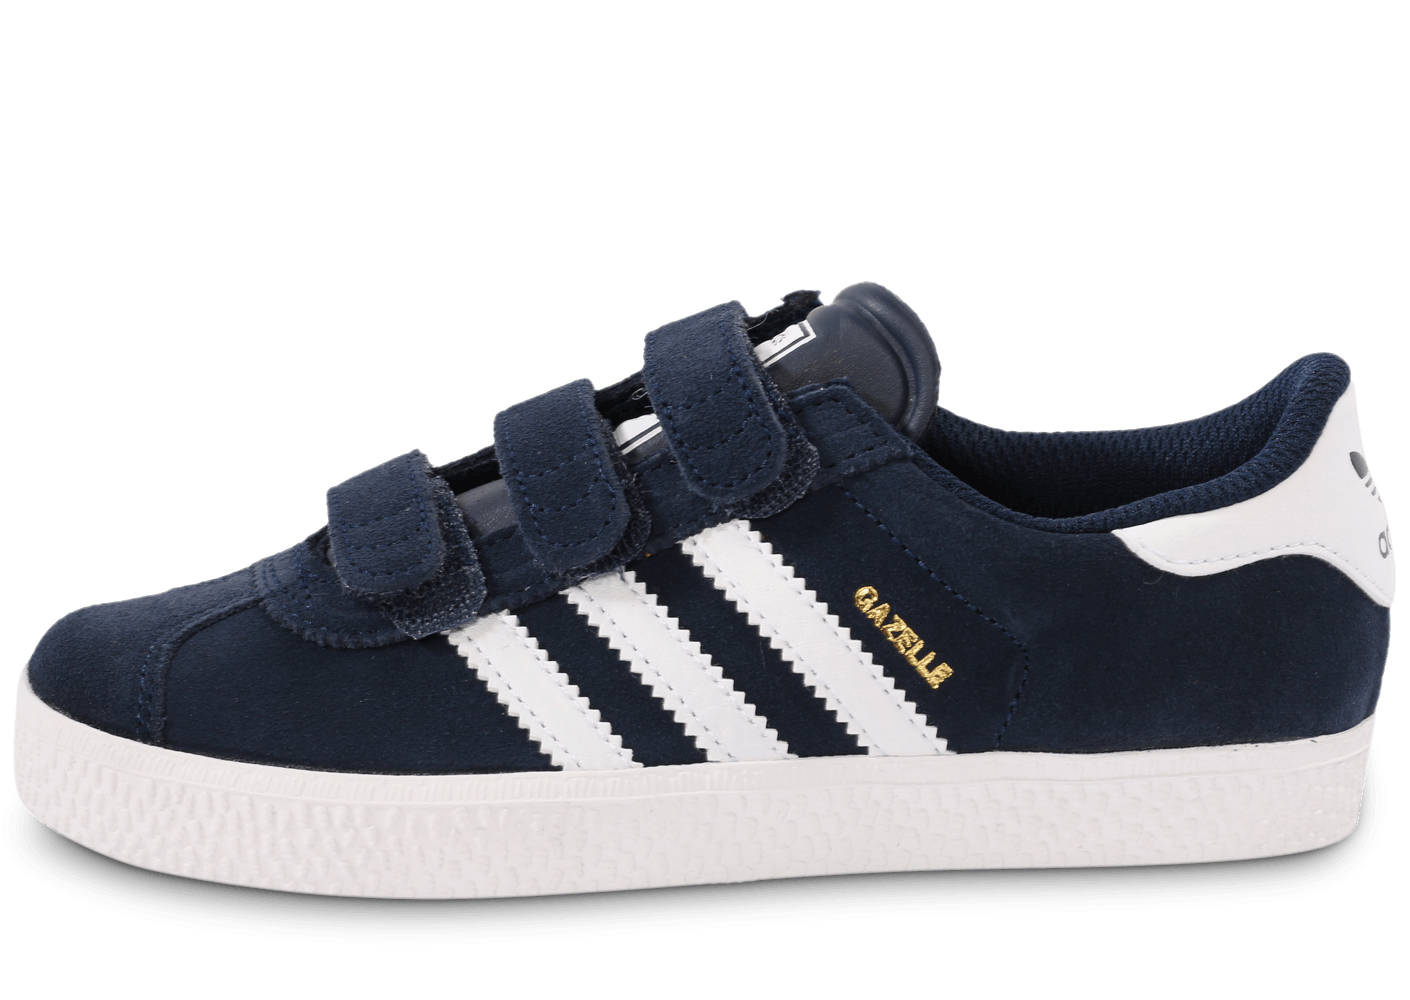 adidas gazelle 2 cf bleu marine enfant chaussures adidas chausport. Black Bedroom Furniture Sets. Home Design Ideas